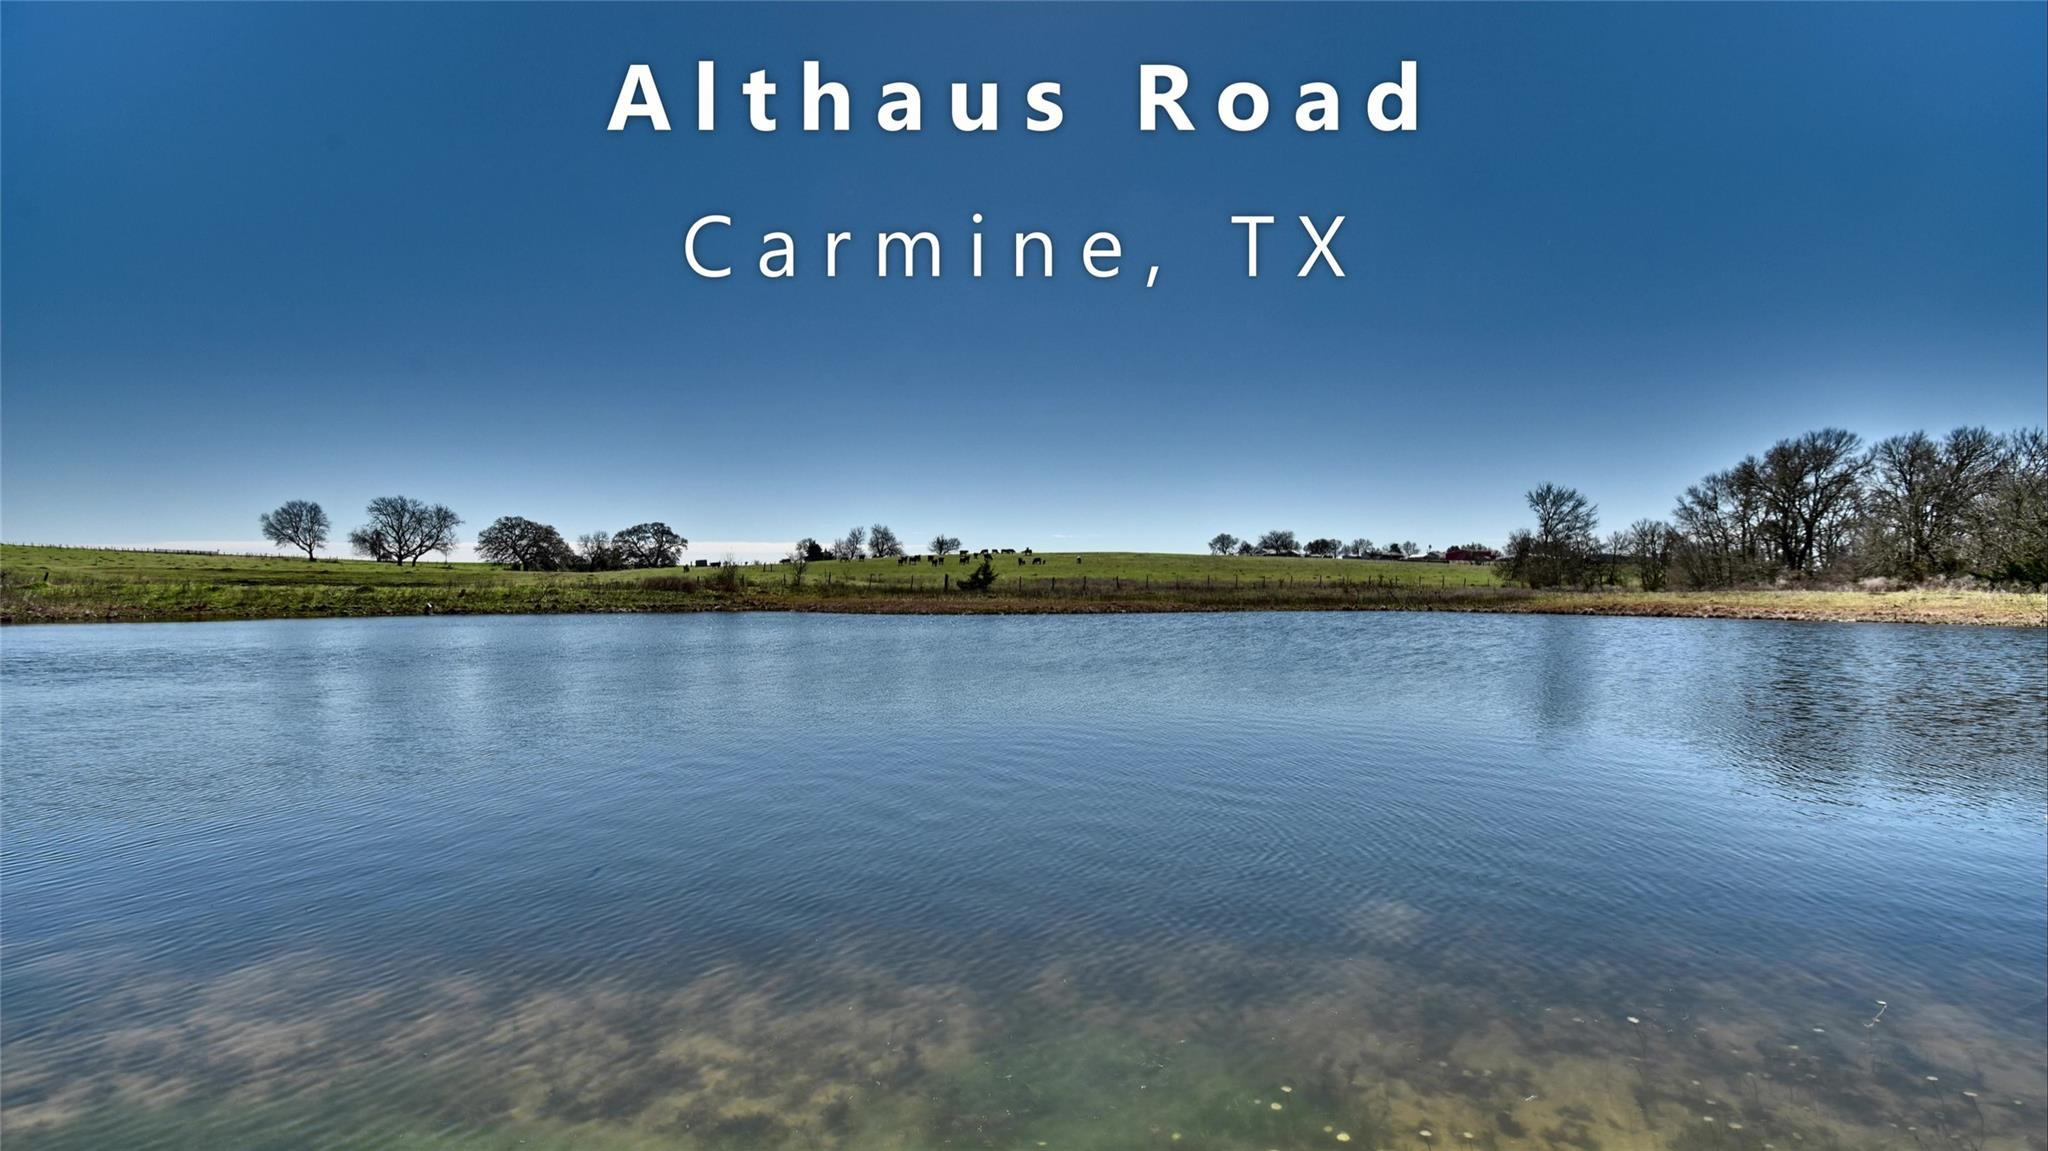 000 Althaus Road Property Photo - Carmine, TX real estate listing